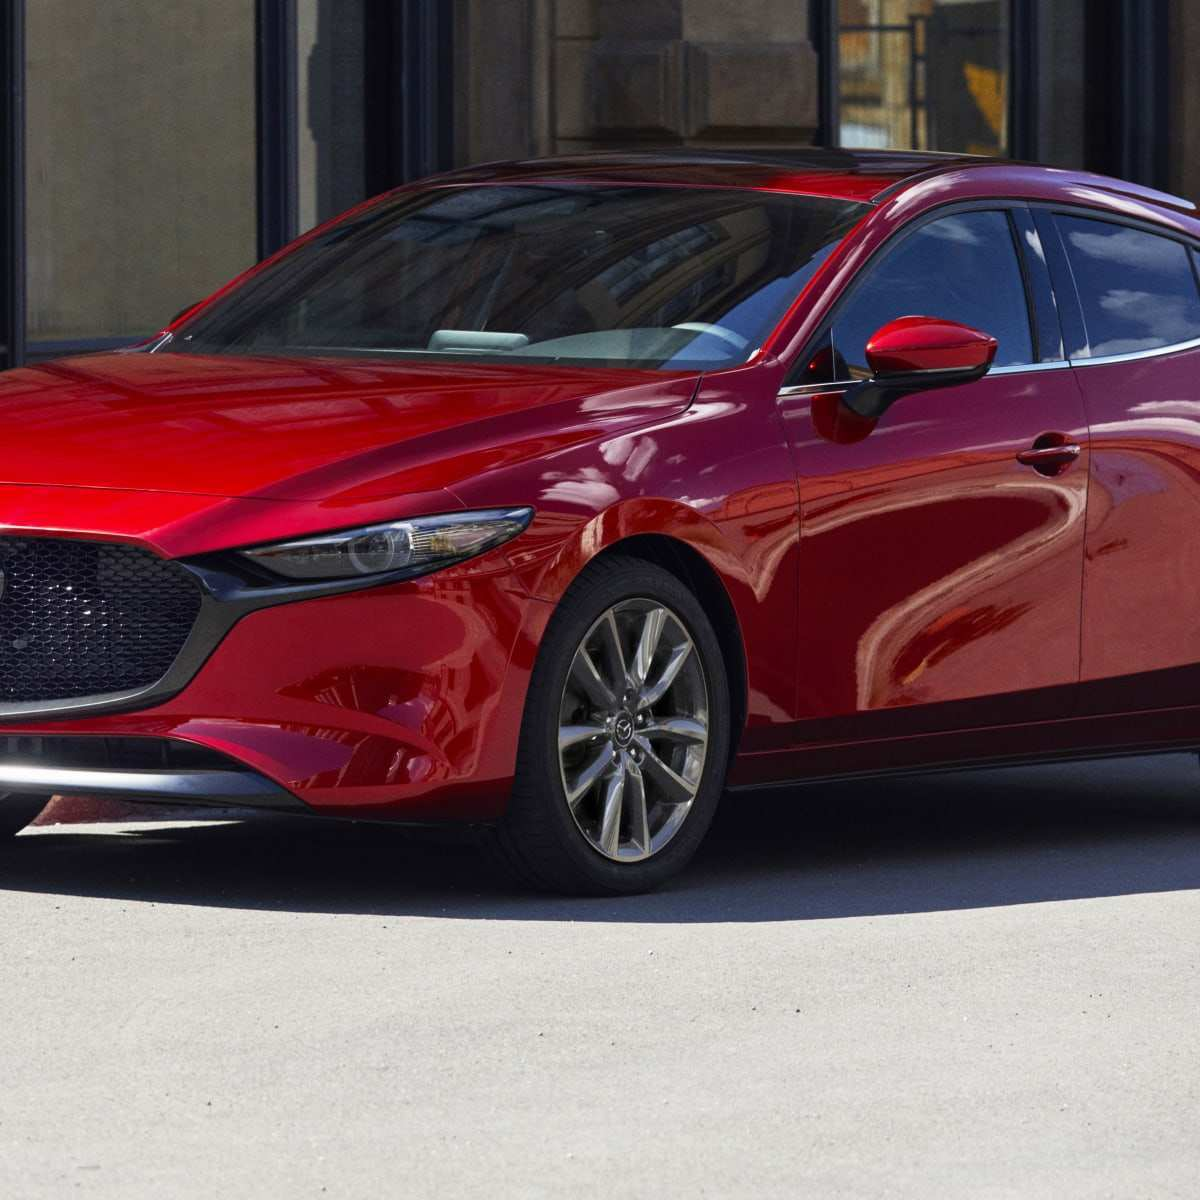 57 Concept of When Does The 2020 Mazda 3 Come Out New Review by When Does The 2020 Mazda 3 Come Out